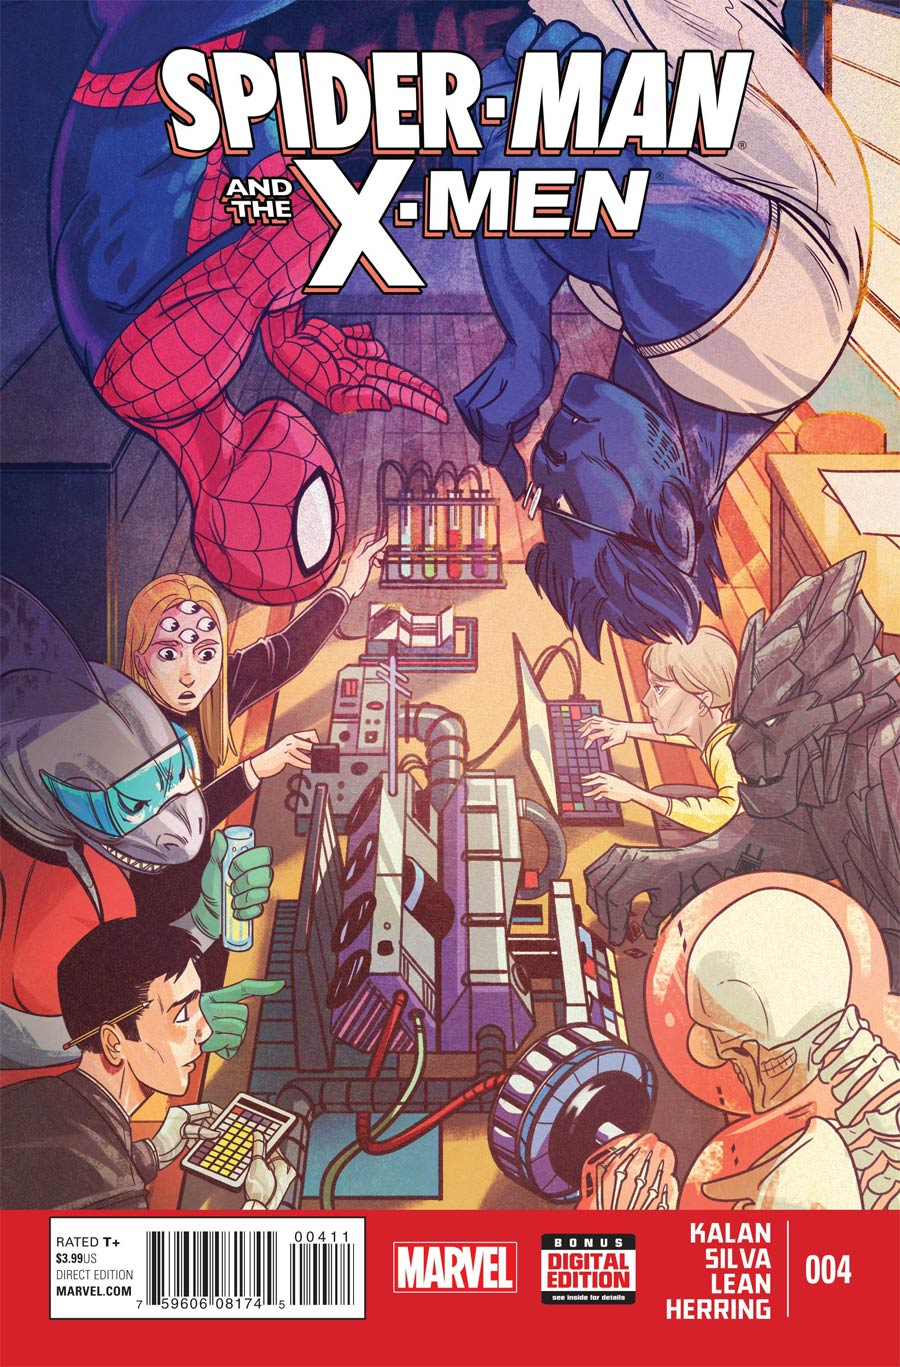 Spider-Man And The X-Men #4